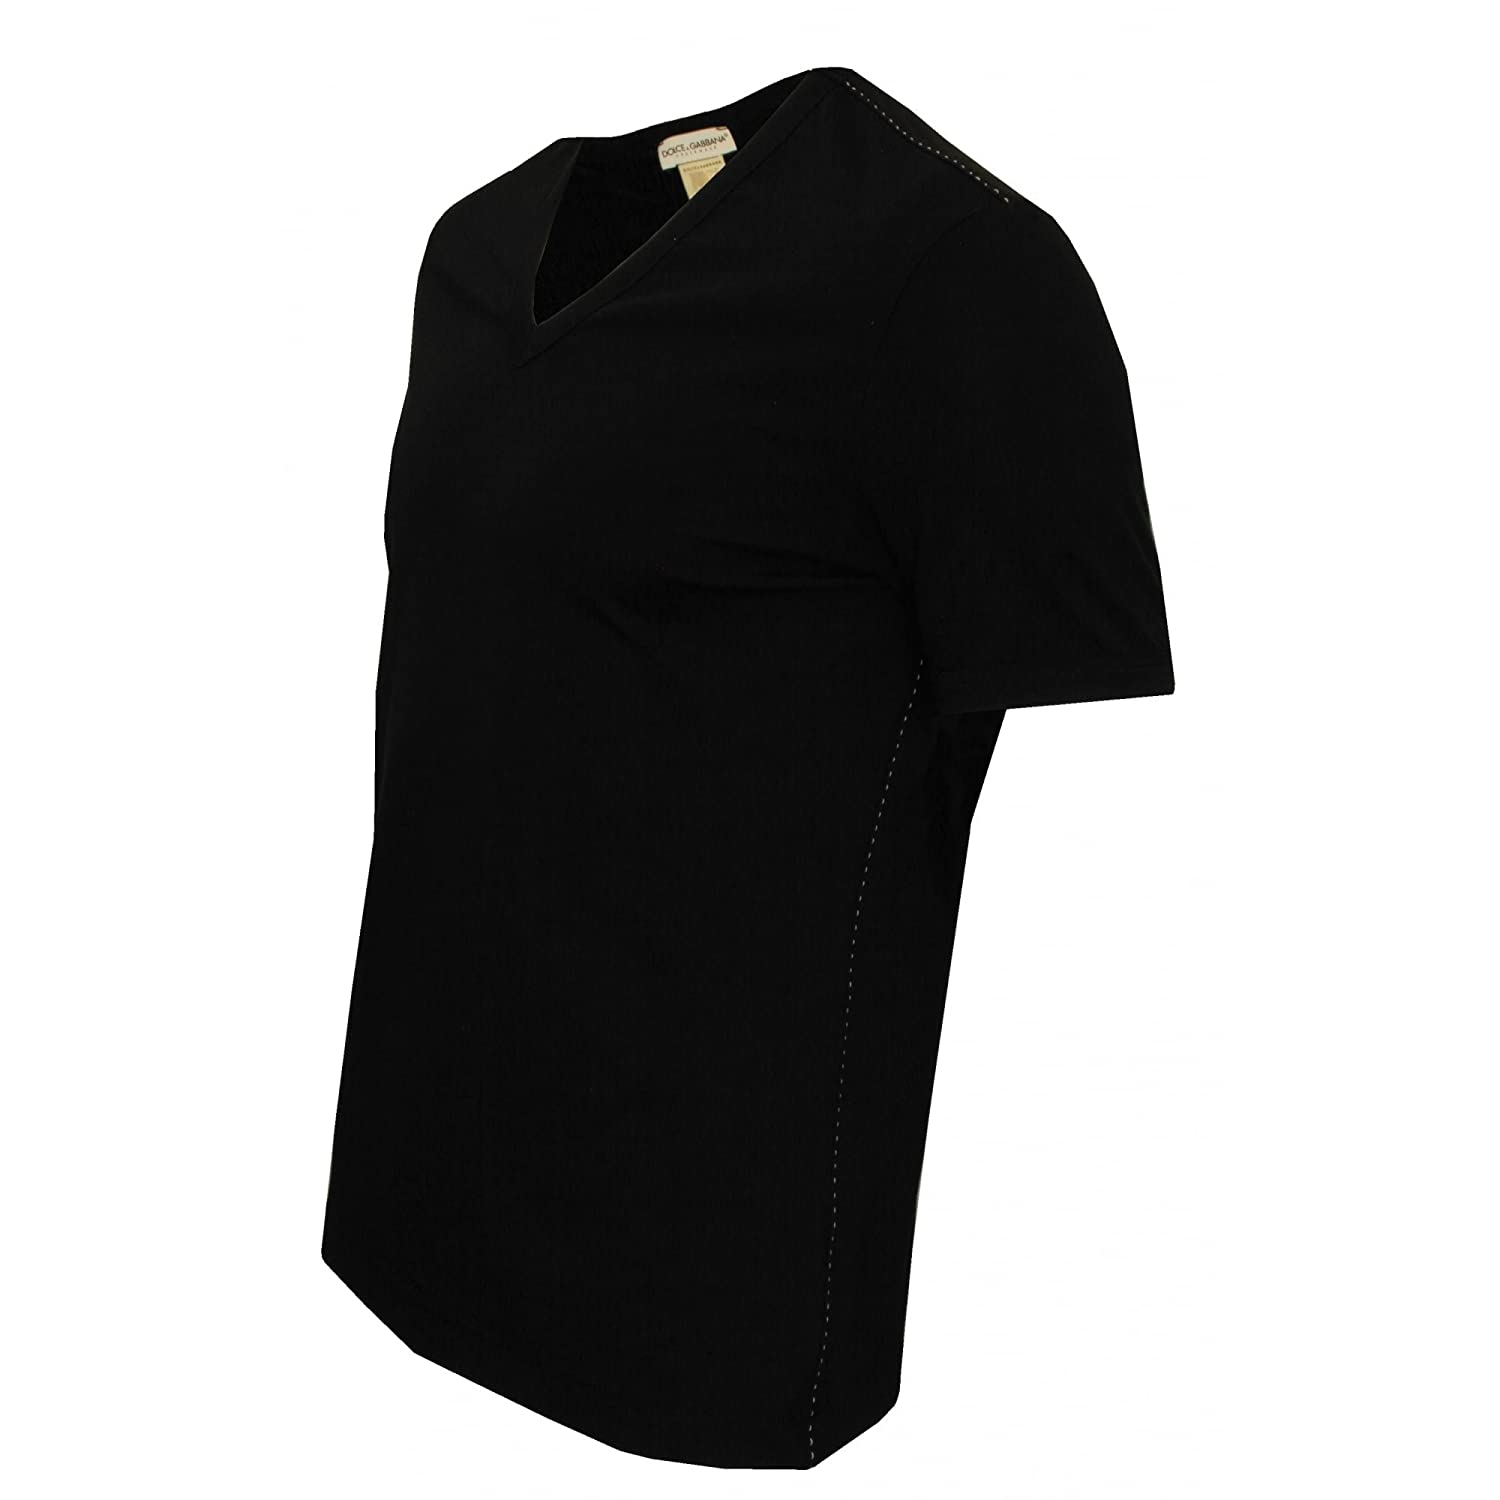 9110ad951dd Amazon.com: Dolce & Gabbana Mens Tailoring V-Neck T-Shirt: Clothing